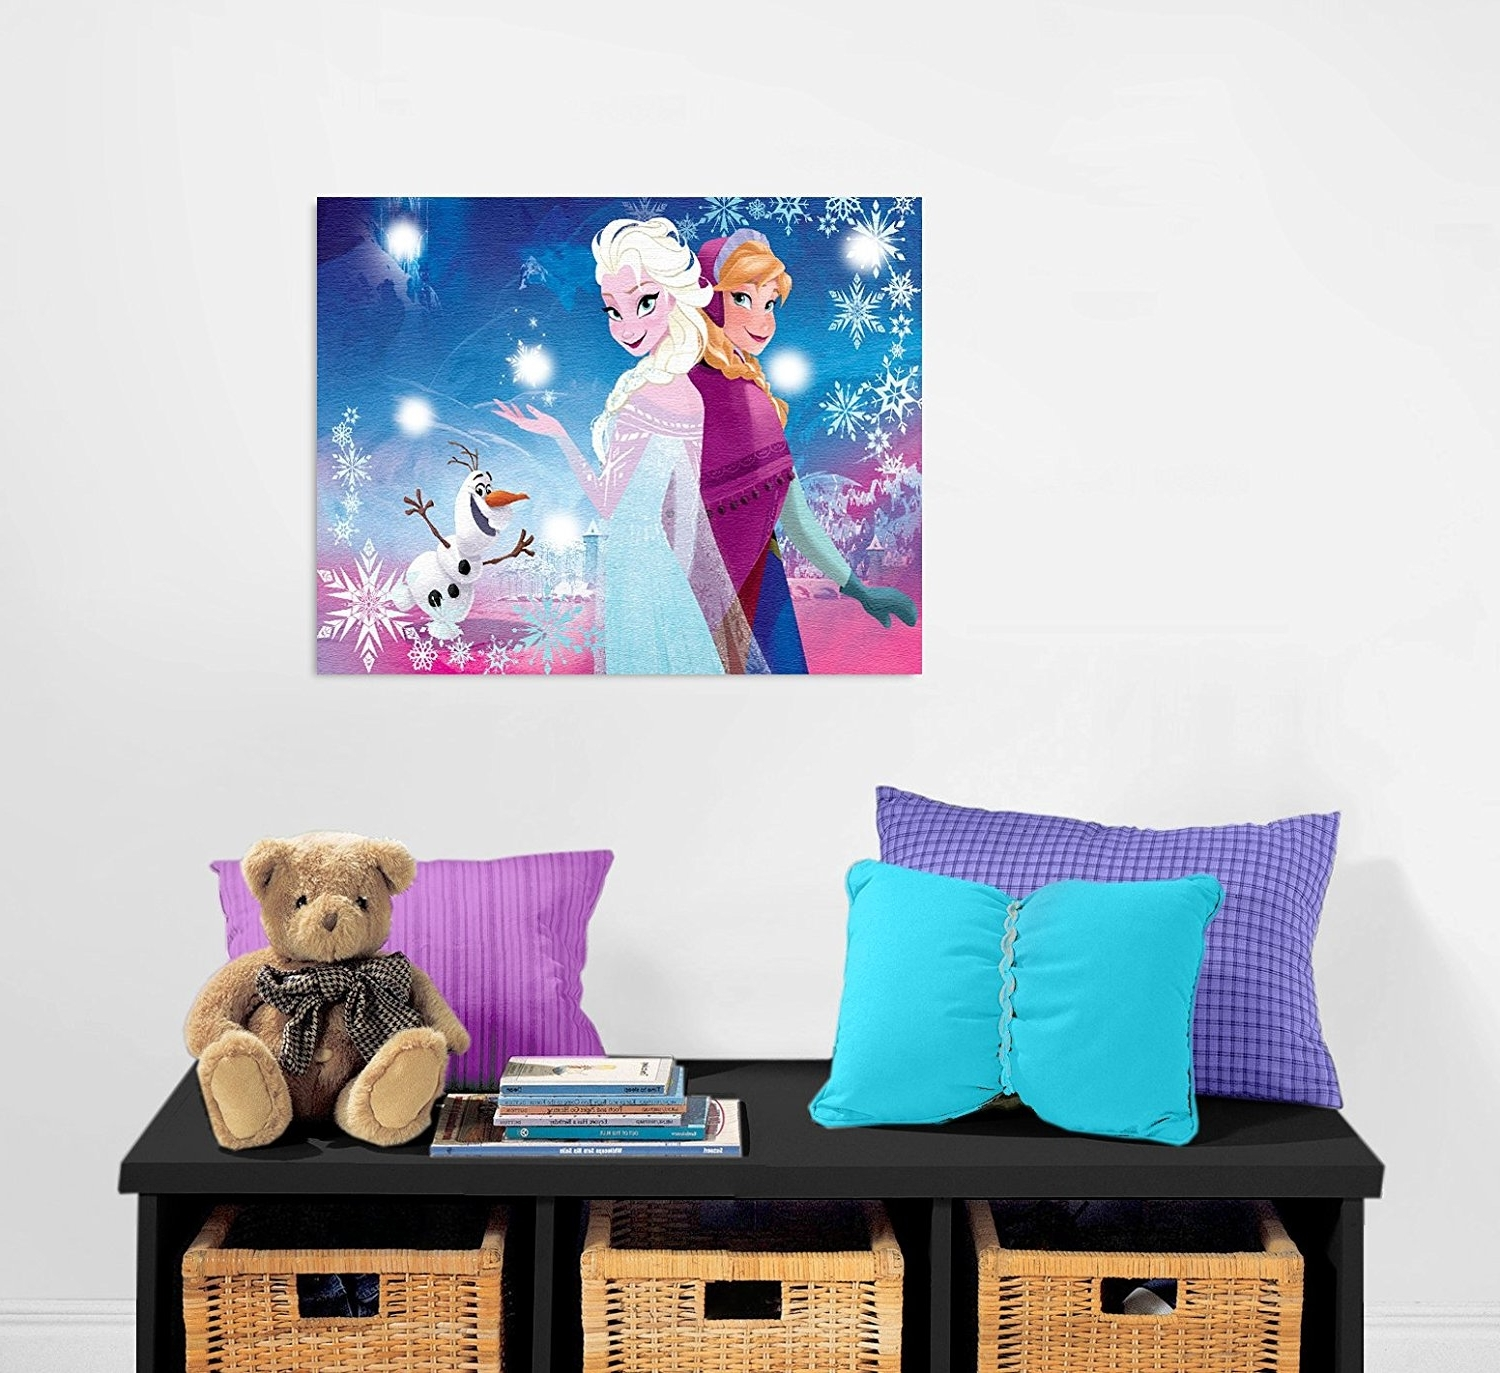 Disney Canvas Wall Art For Well Known Amazon: Disney Frozen Canvas Led Wall Art: Toys & Games (View 2 of 15)